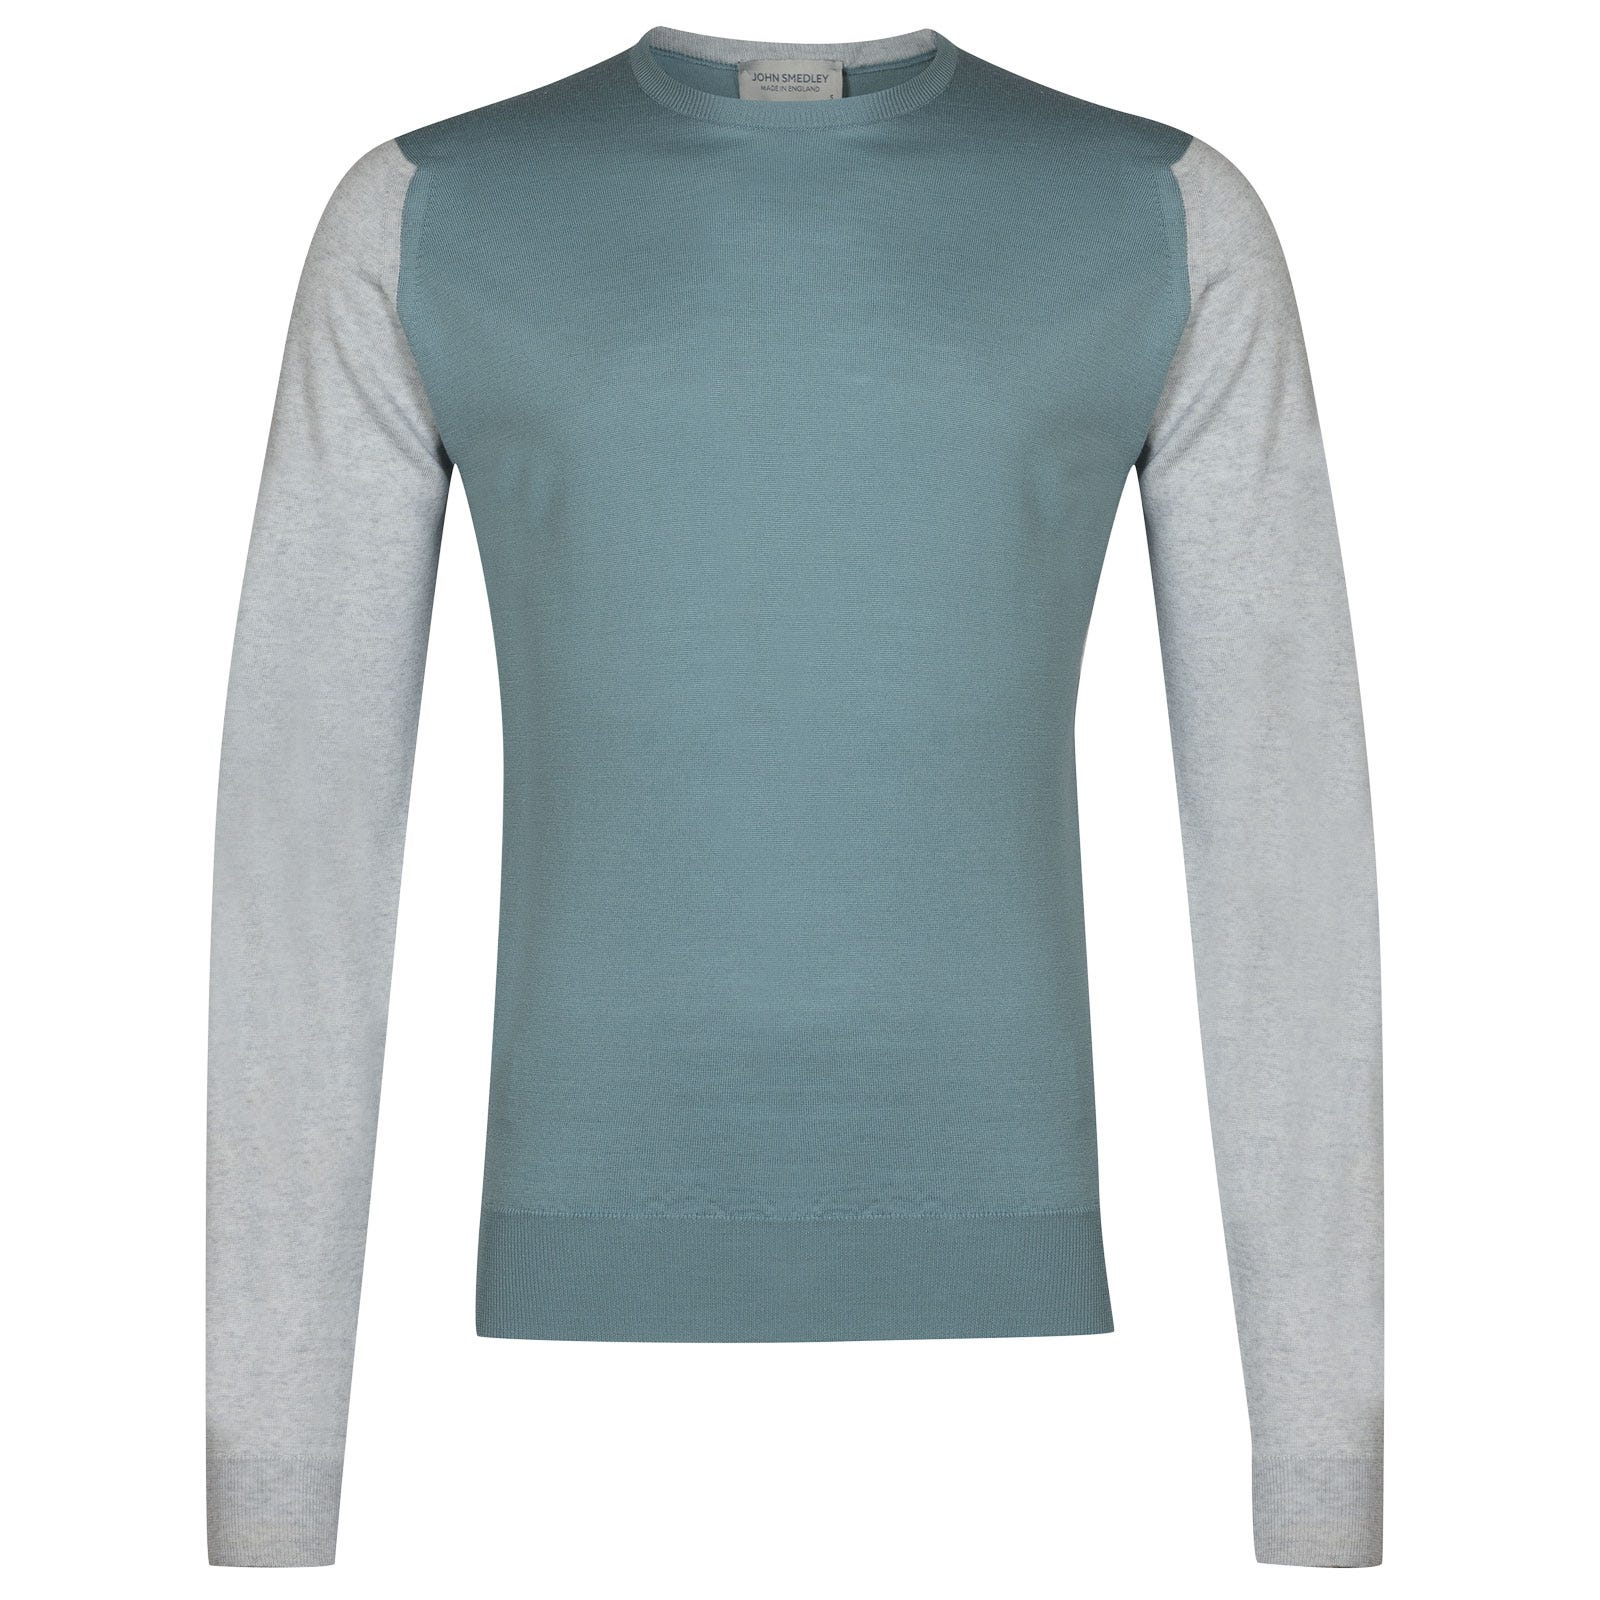 John Smedley hindlow Merino Wool Pullover in Bardot Grey/Summit Blue-L